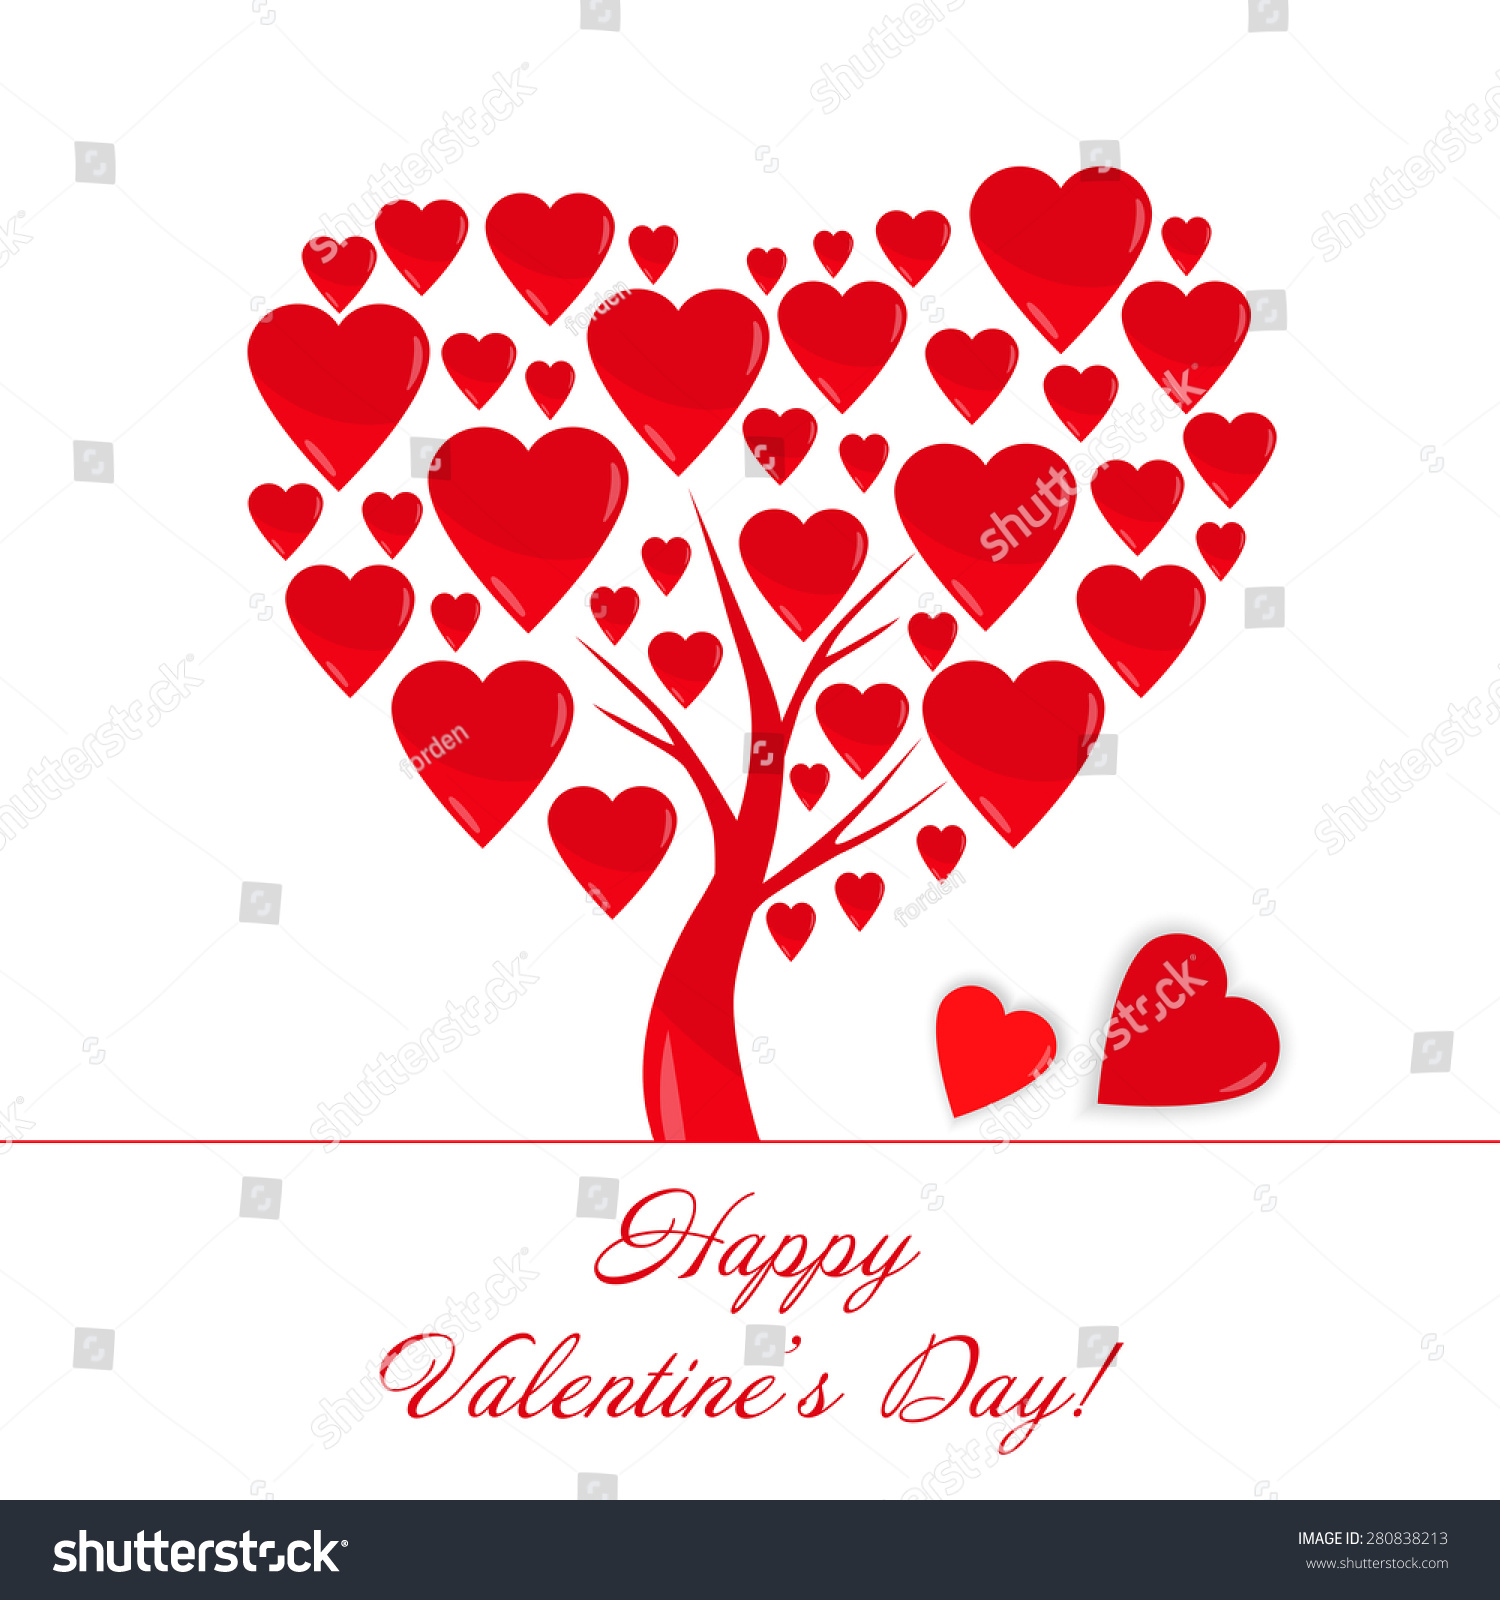 Greeting Card Words Happy Valentines Day Illustration – Valentine Card Words